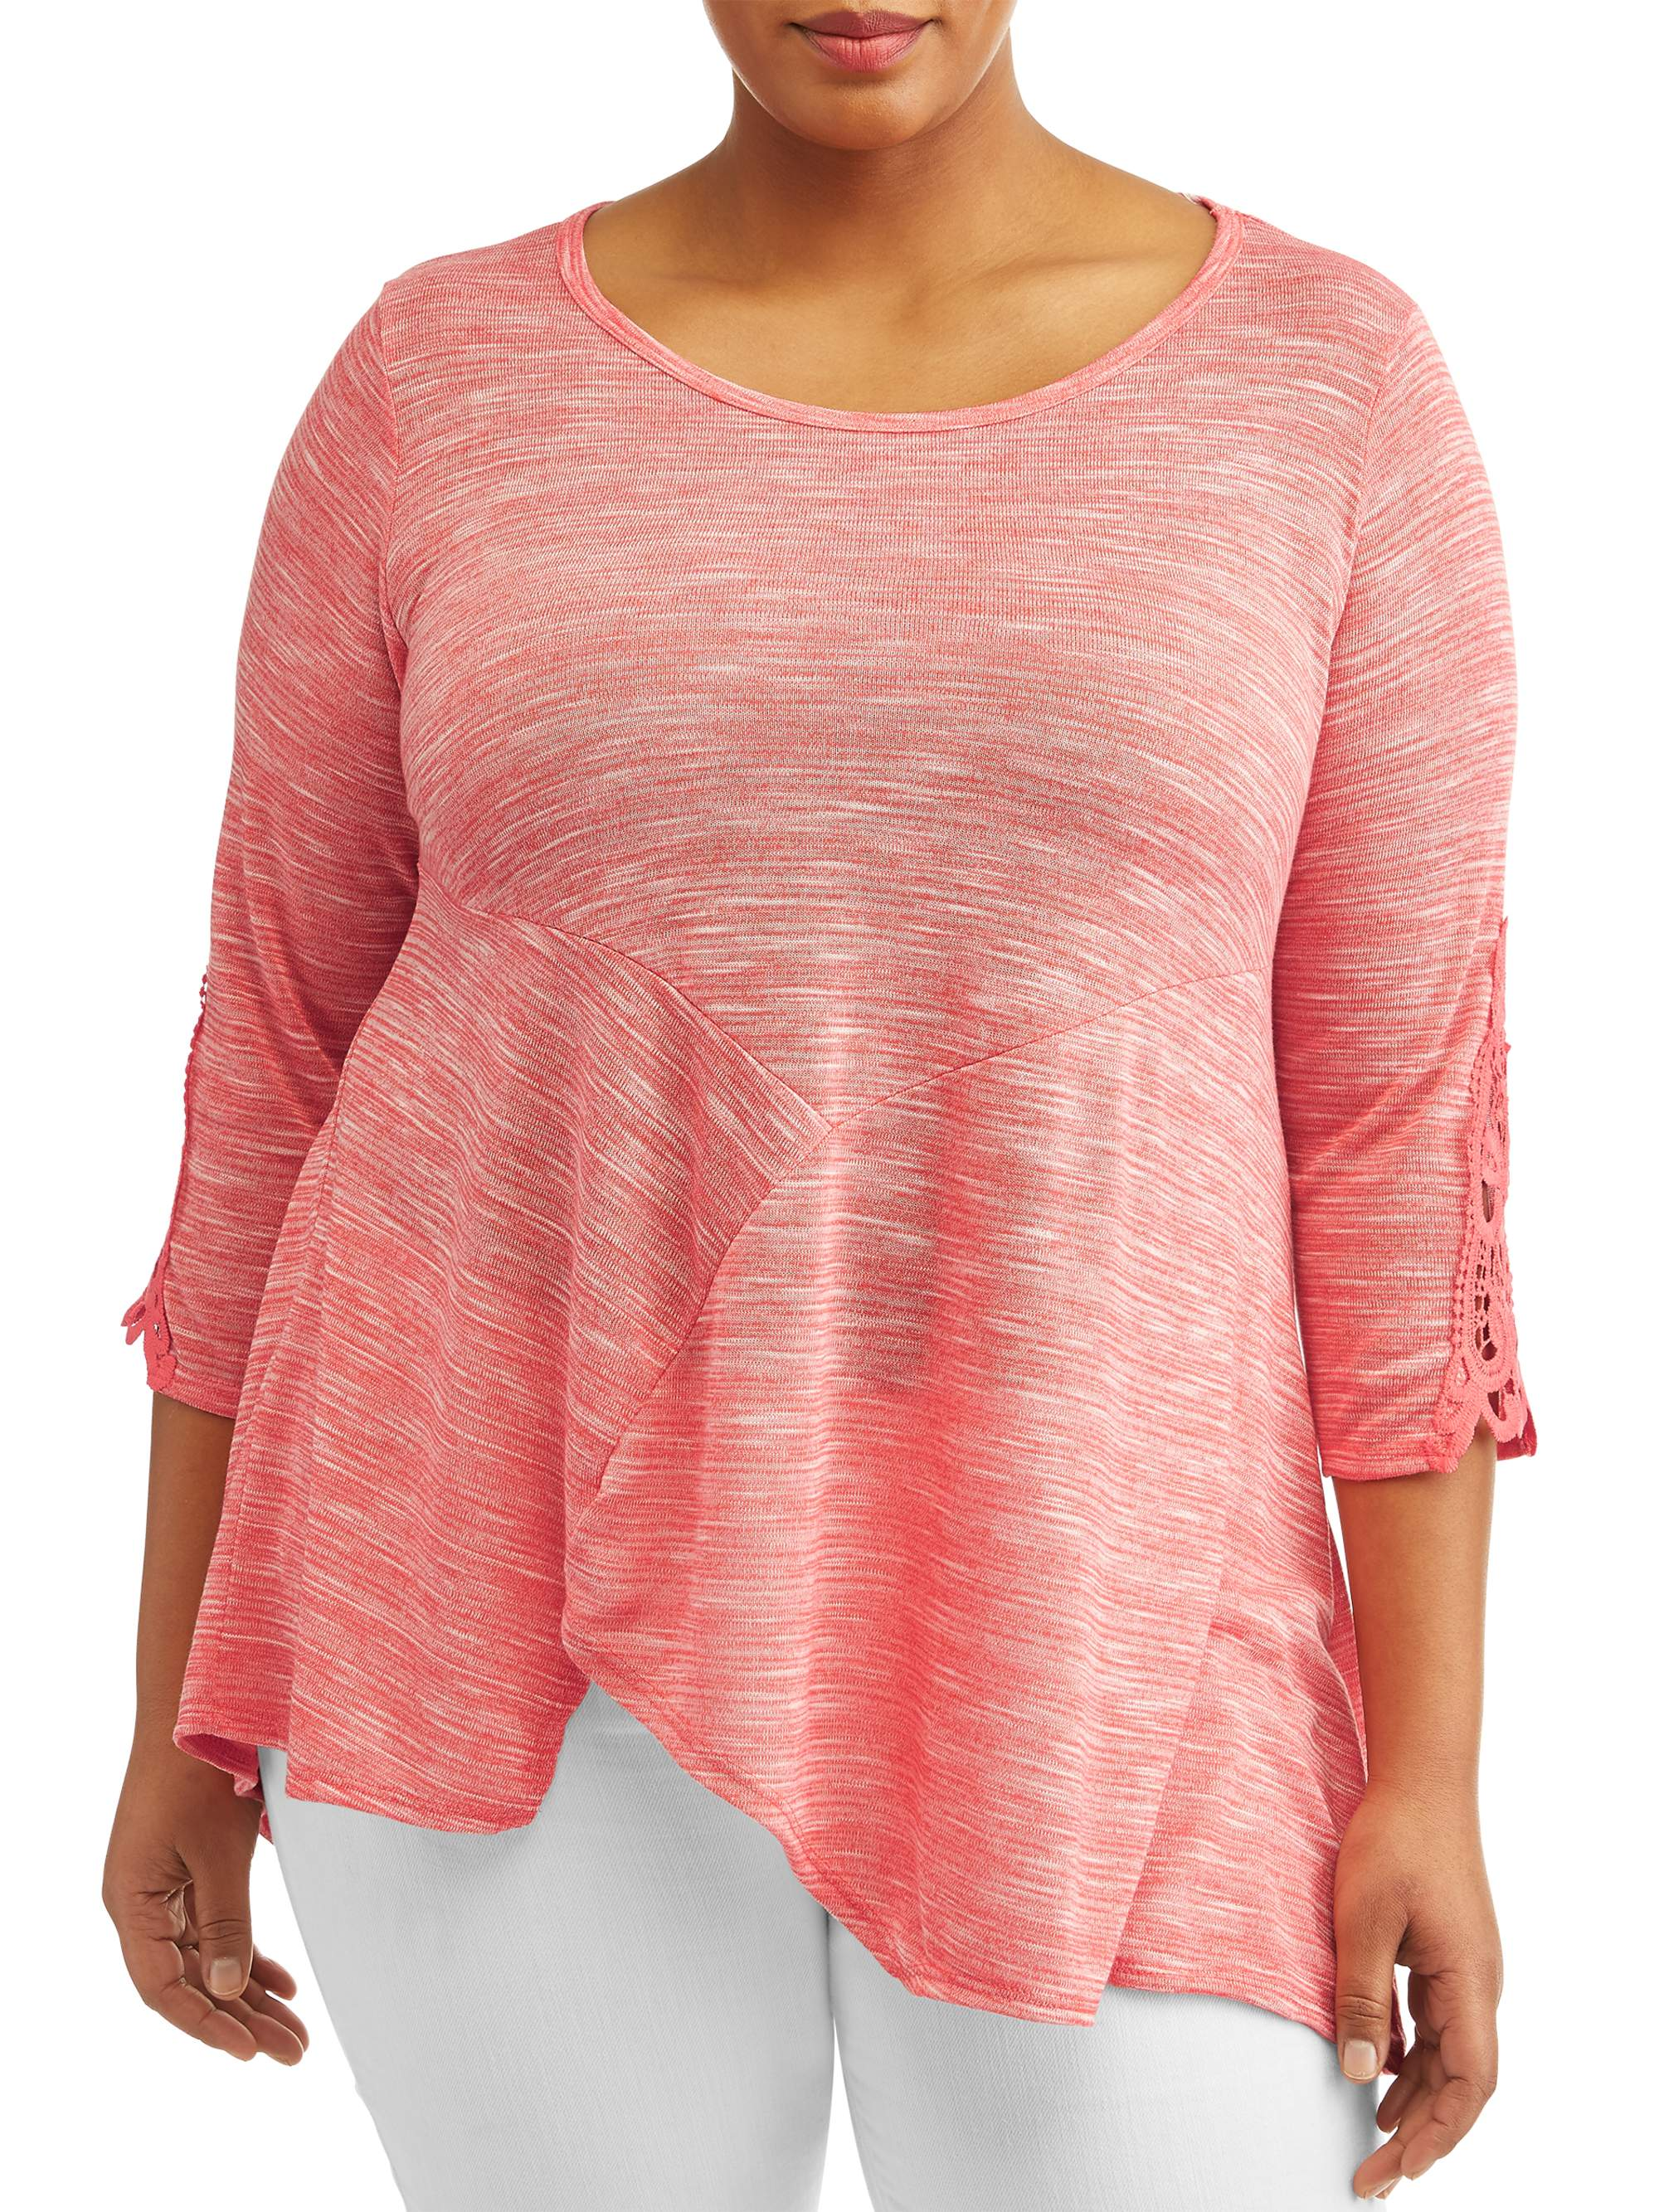 Women's Plus Size Elbow Sleeve Tunic Top With Crochet